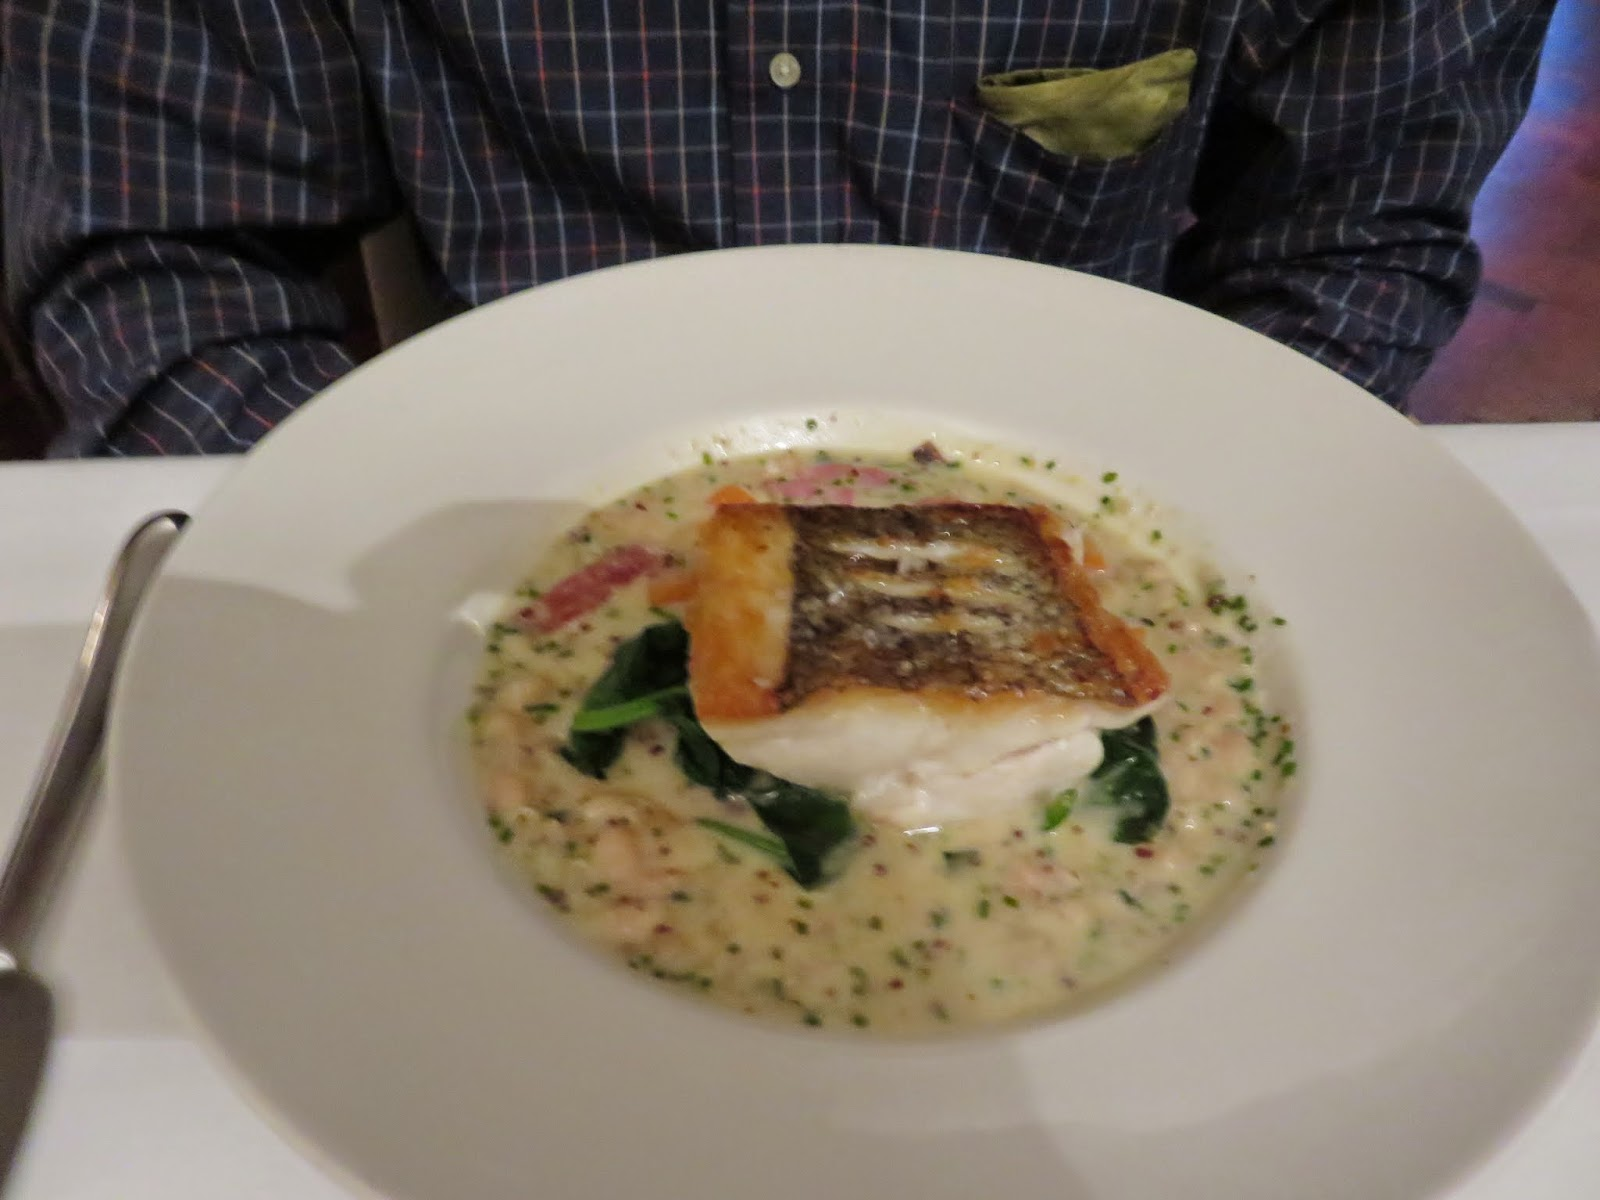 pan fried hake, haricot beans, baby spinach, salsify, and Morteau sausage